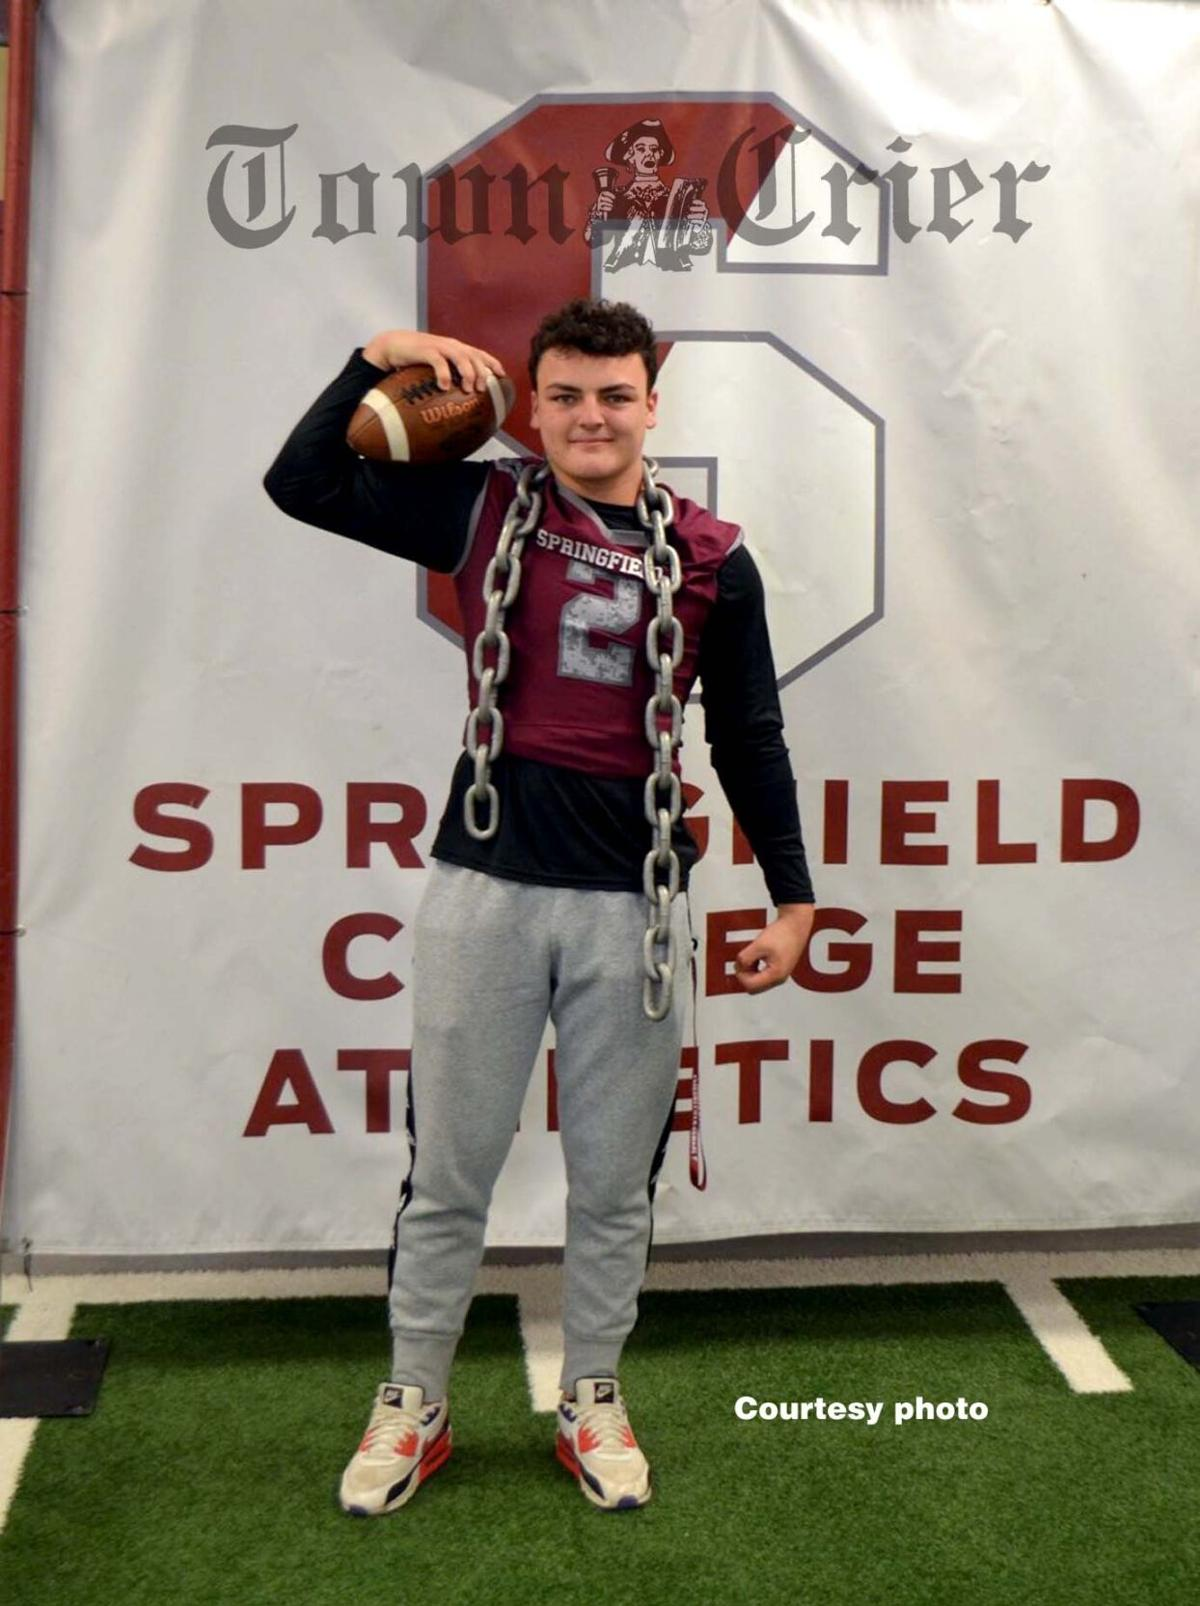 TMHS' Will McKay will play football at Springfield College